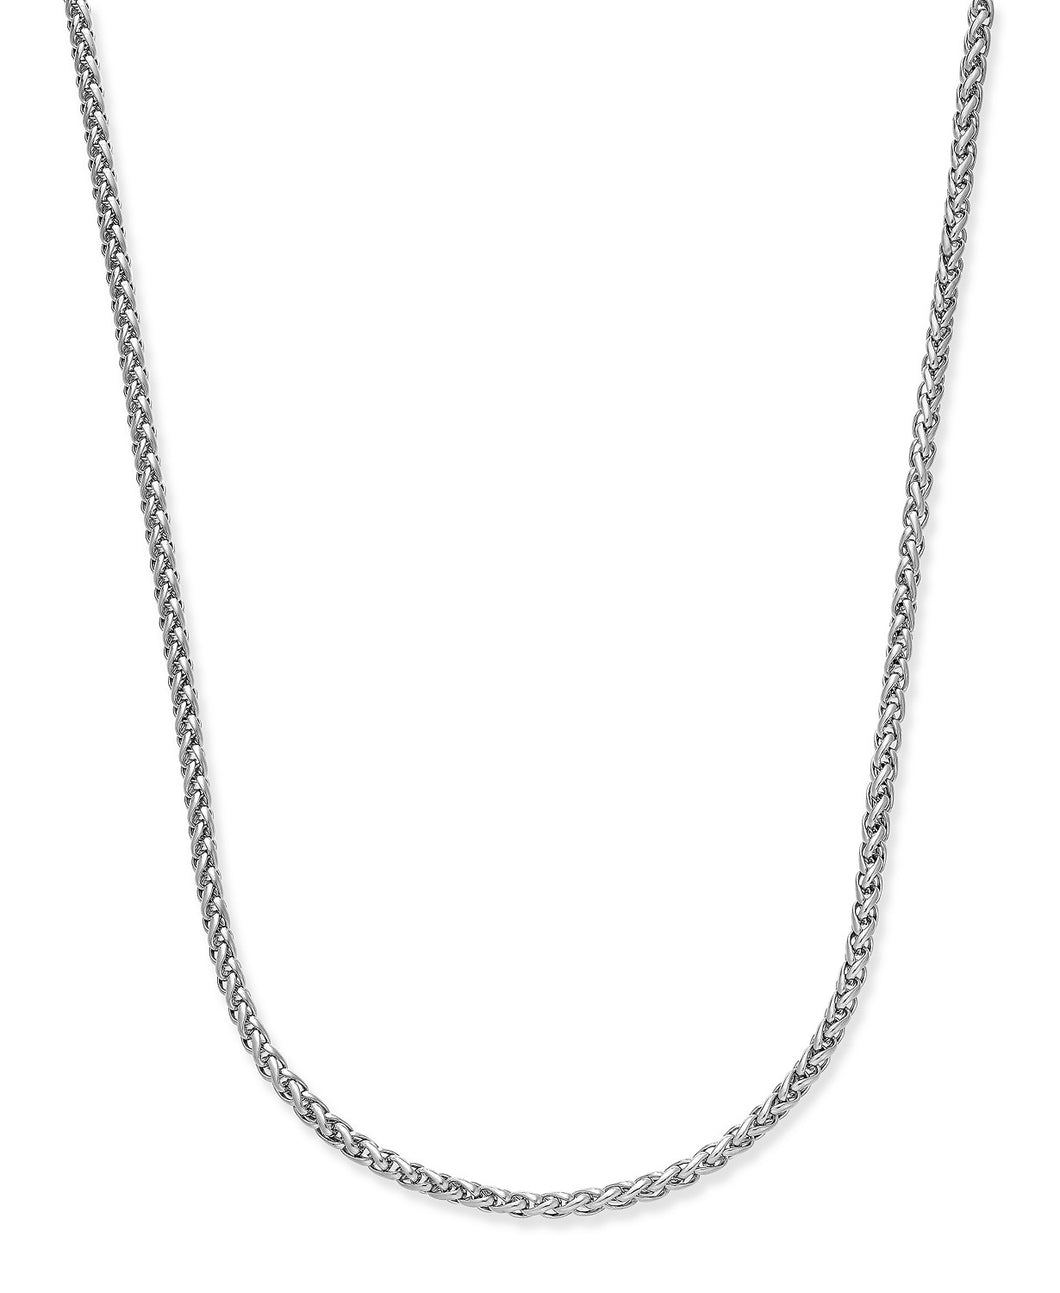 Men's Stainless Steel Chain Necklace